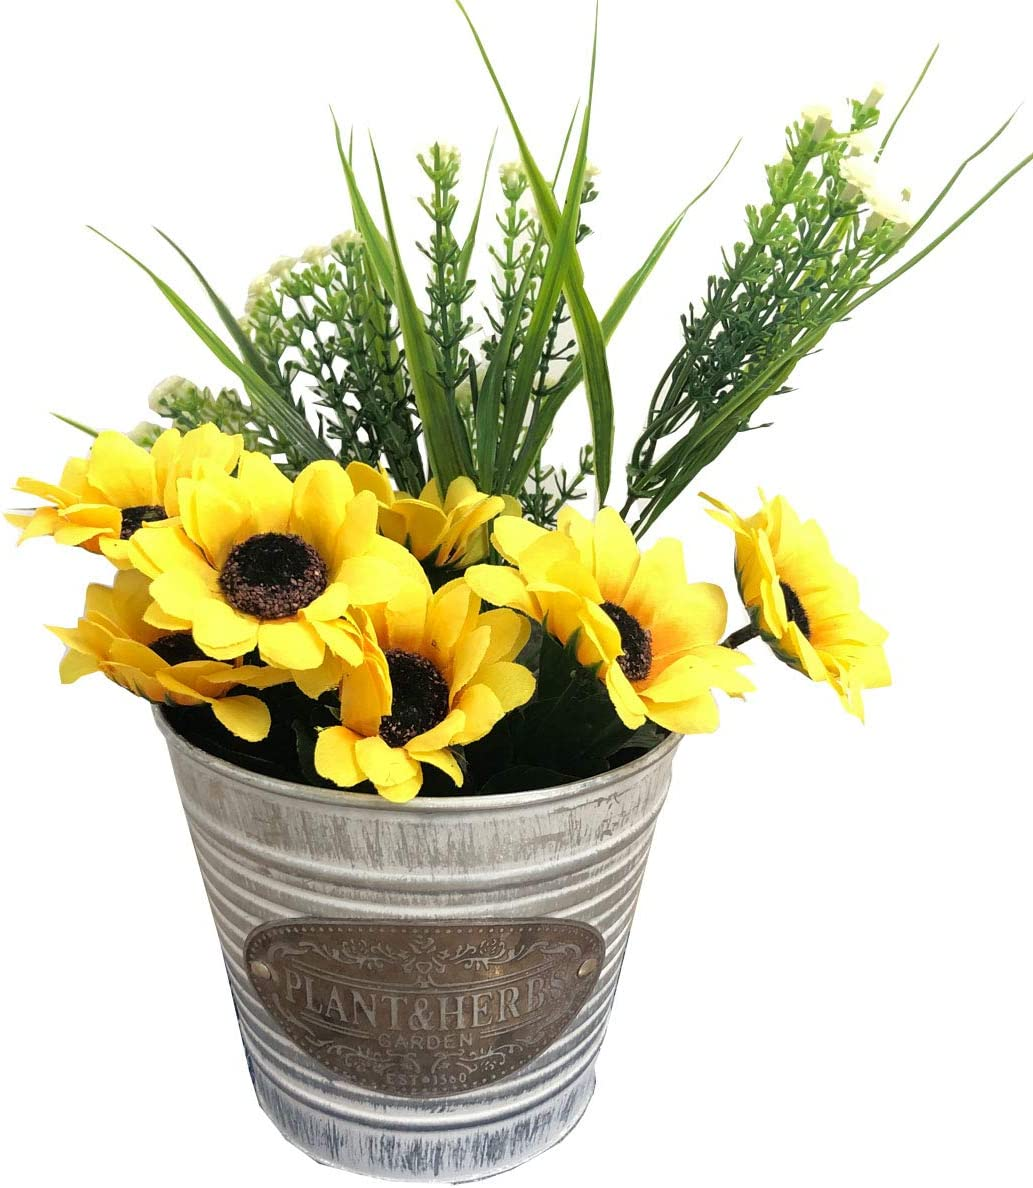 Ashley ZC Metal Decorative Bucket for Party Favors and Succulents, Round Garden planters - Metal Handle with Wood Detail